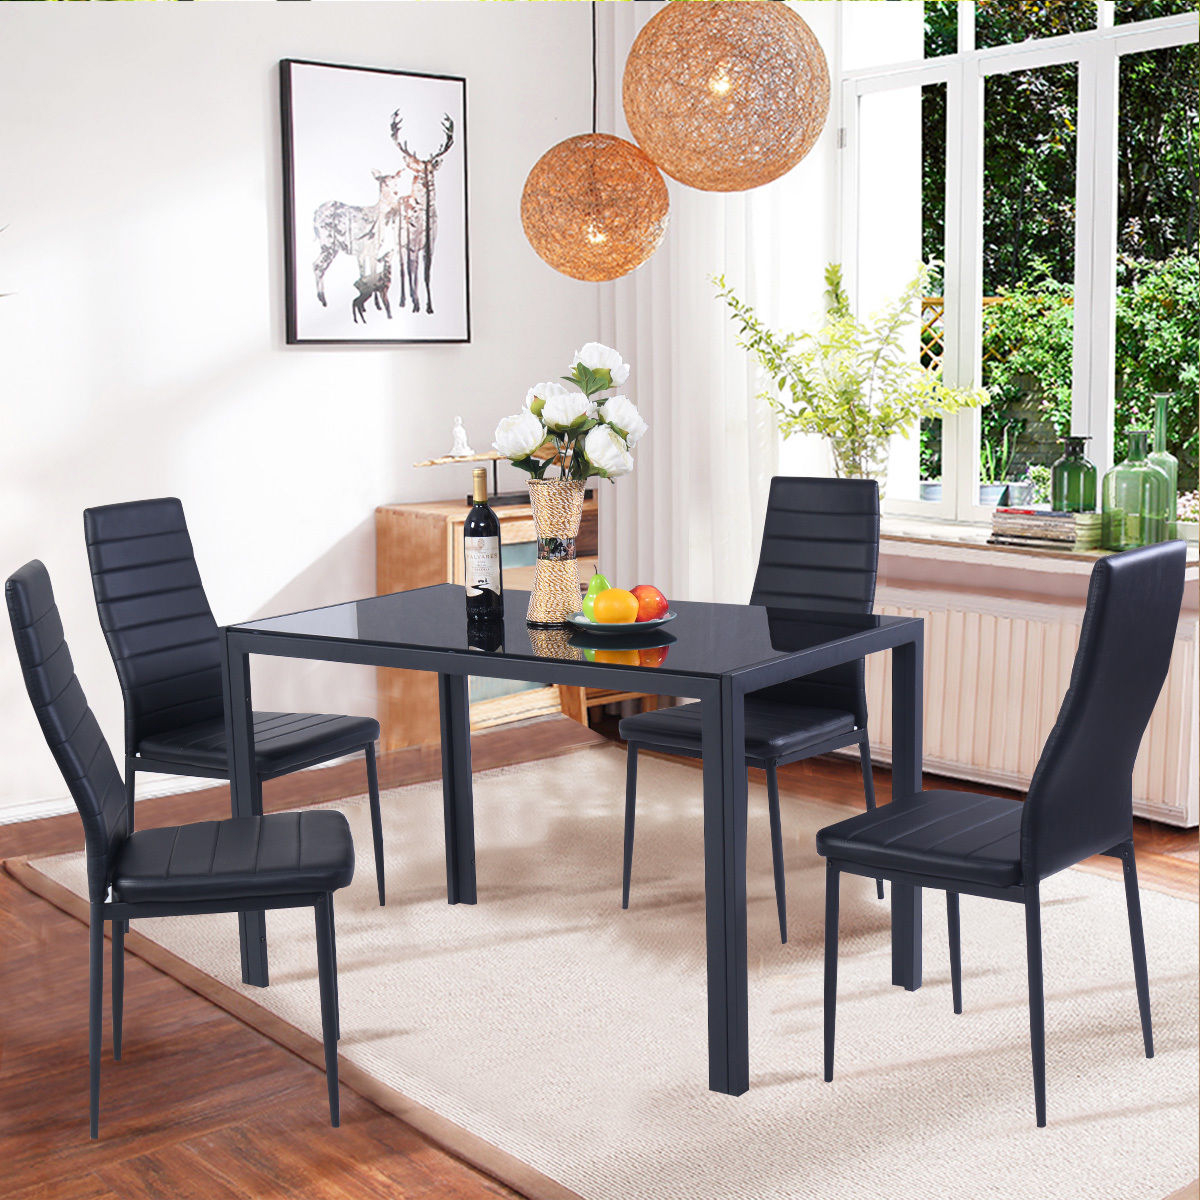 Costway 5 Piece Kitchen Dining Set Glass Metal Table And 4 Chairs Breakfast Furniture pertaining to Living Room Sets For Small Spaces